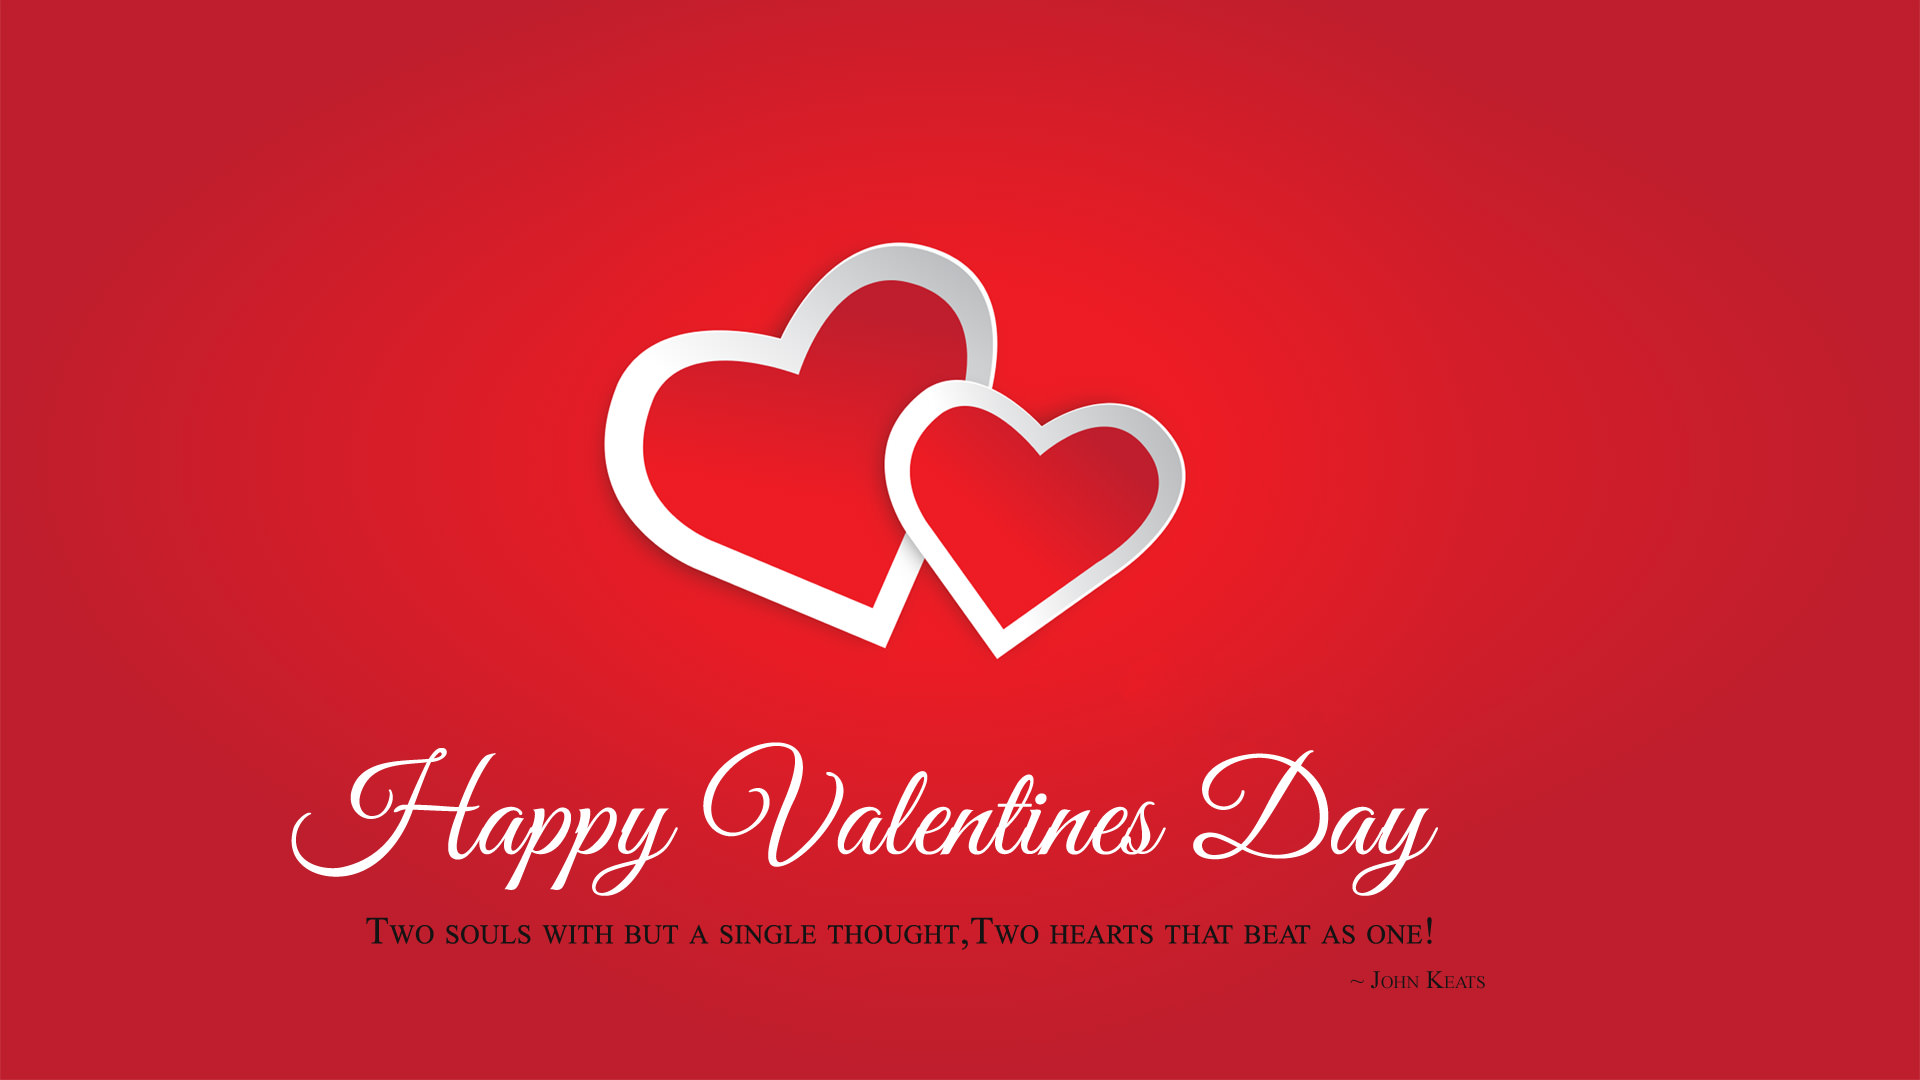 14 Feb Happy Valentines Day Wallpaper Full HD Special Love Images 1920x1080